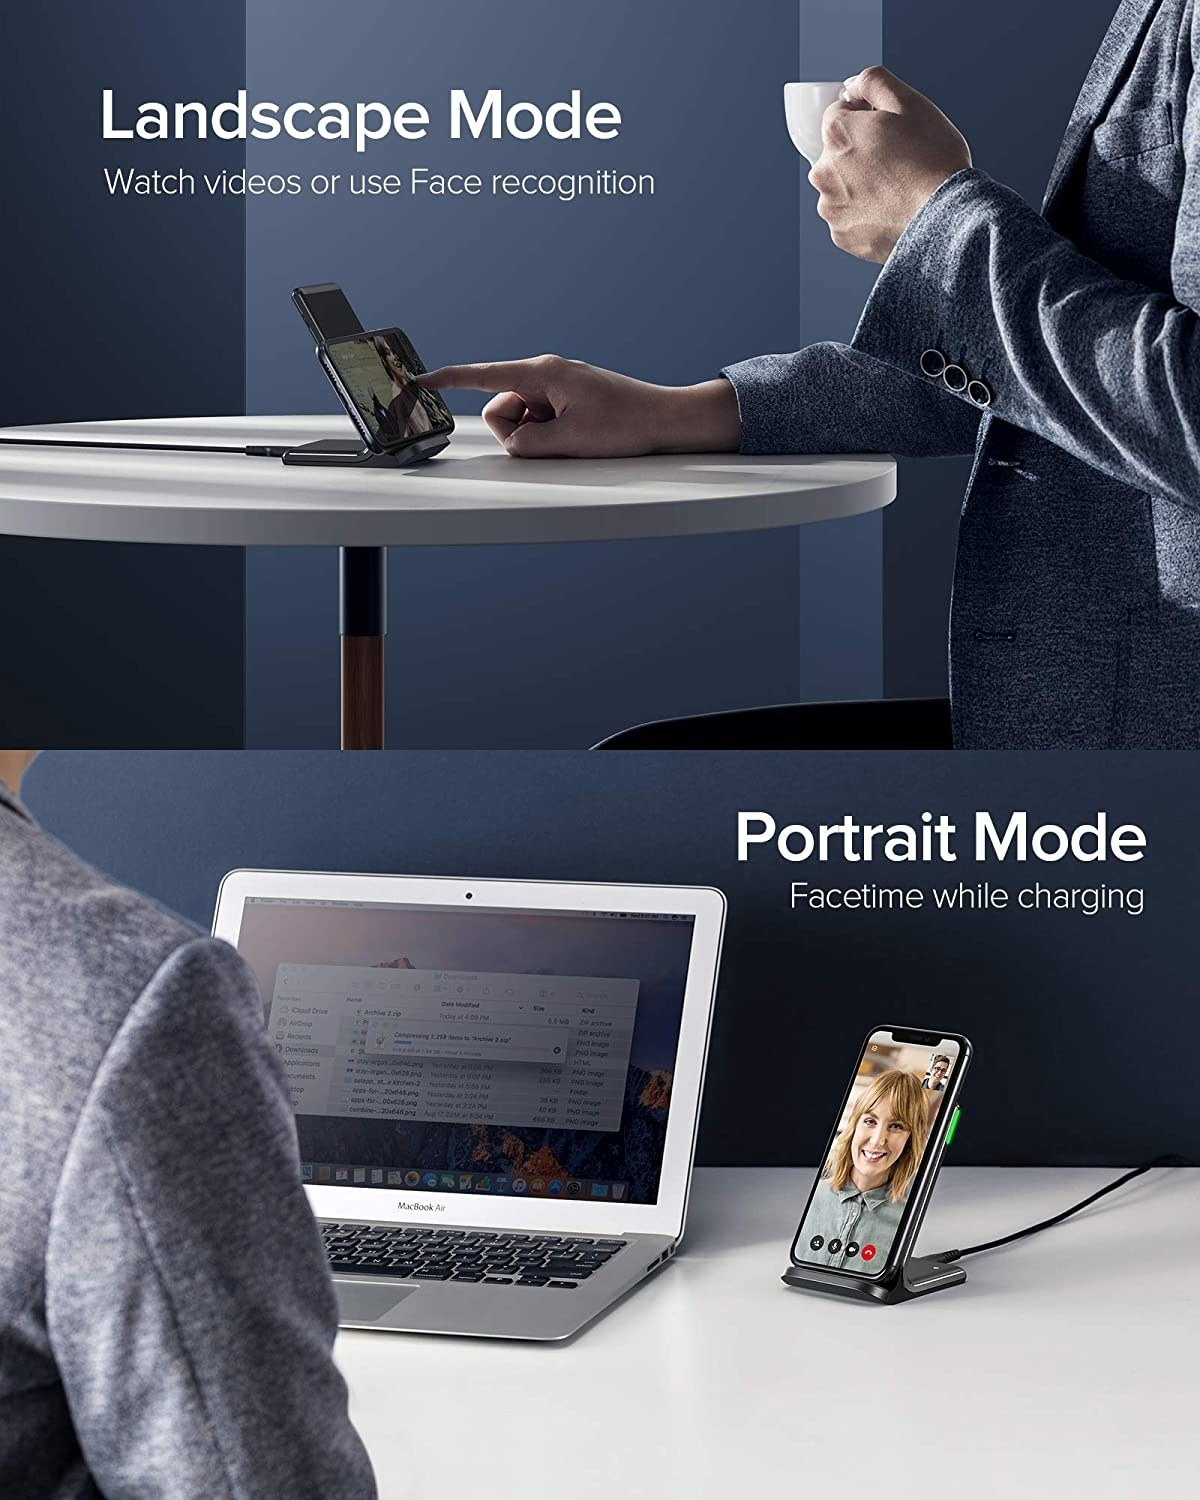 A person using the charger with their phone in landscape mode and a person using it in portrait mode